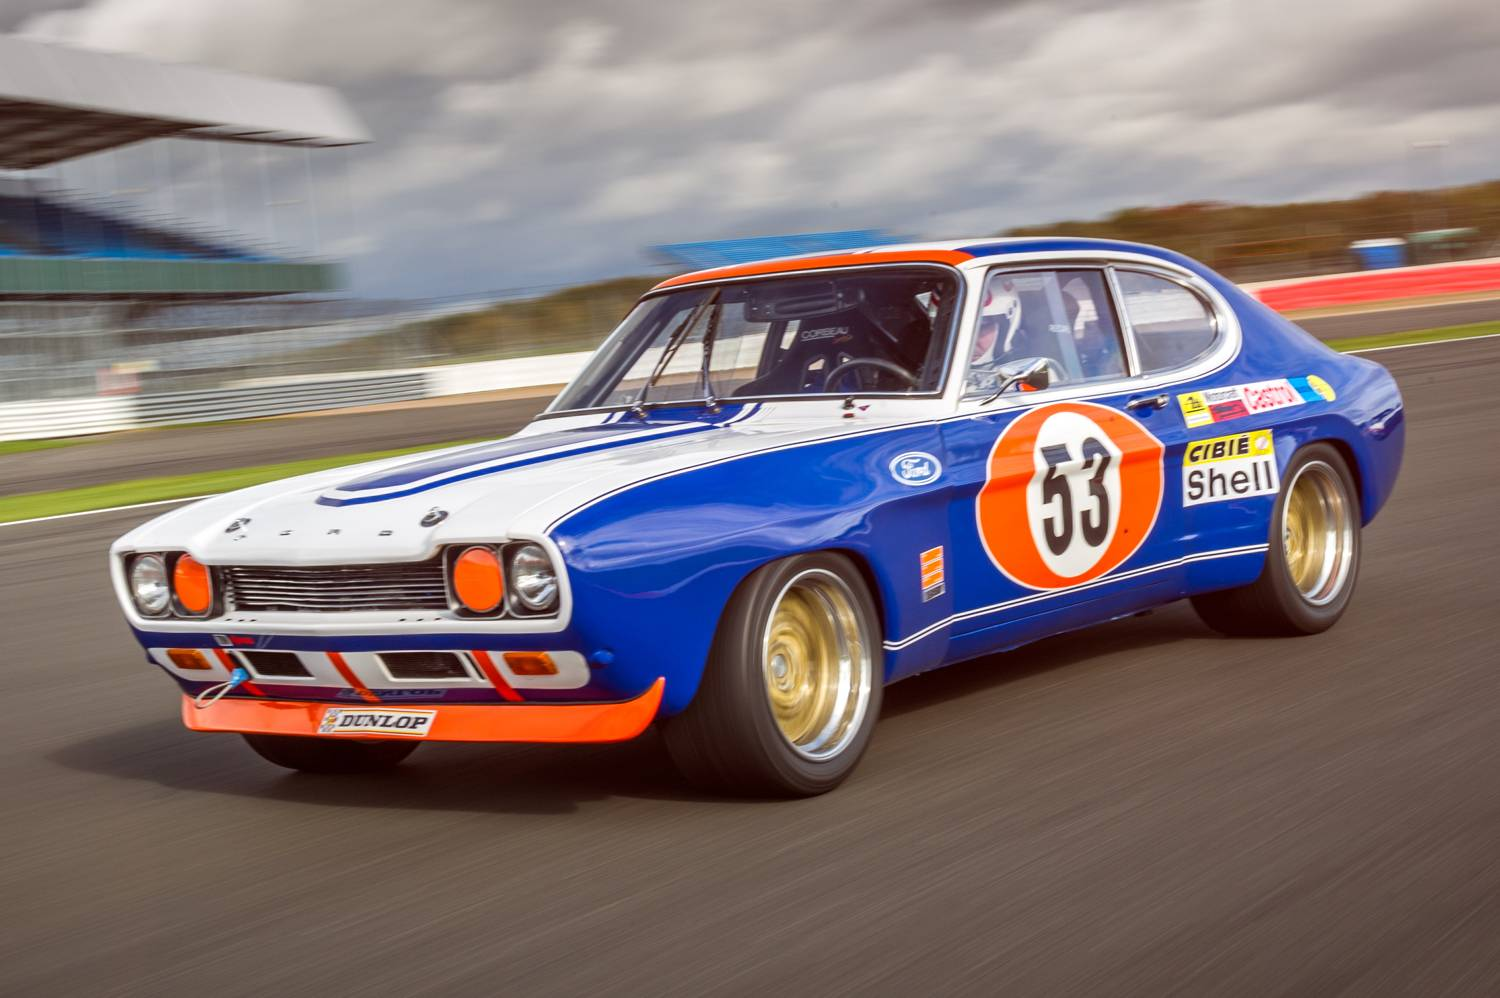 ford capri rs 2600 1972 for sale classic trader. Black Bedroom Furniture Sets. Home Design Ideas